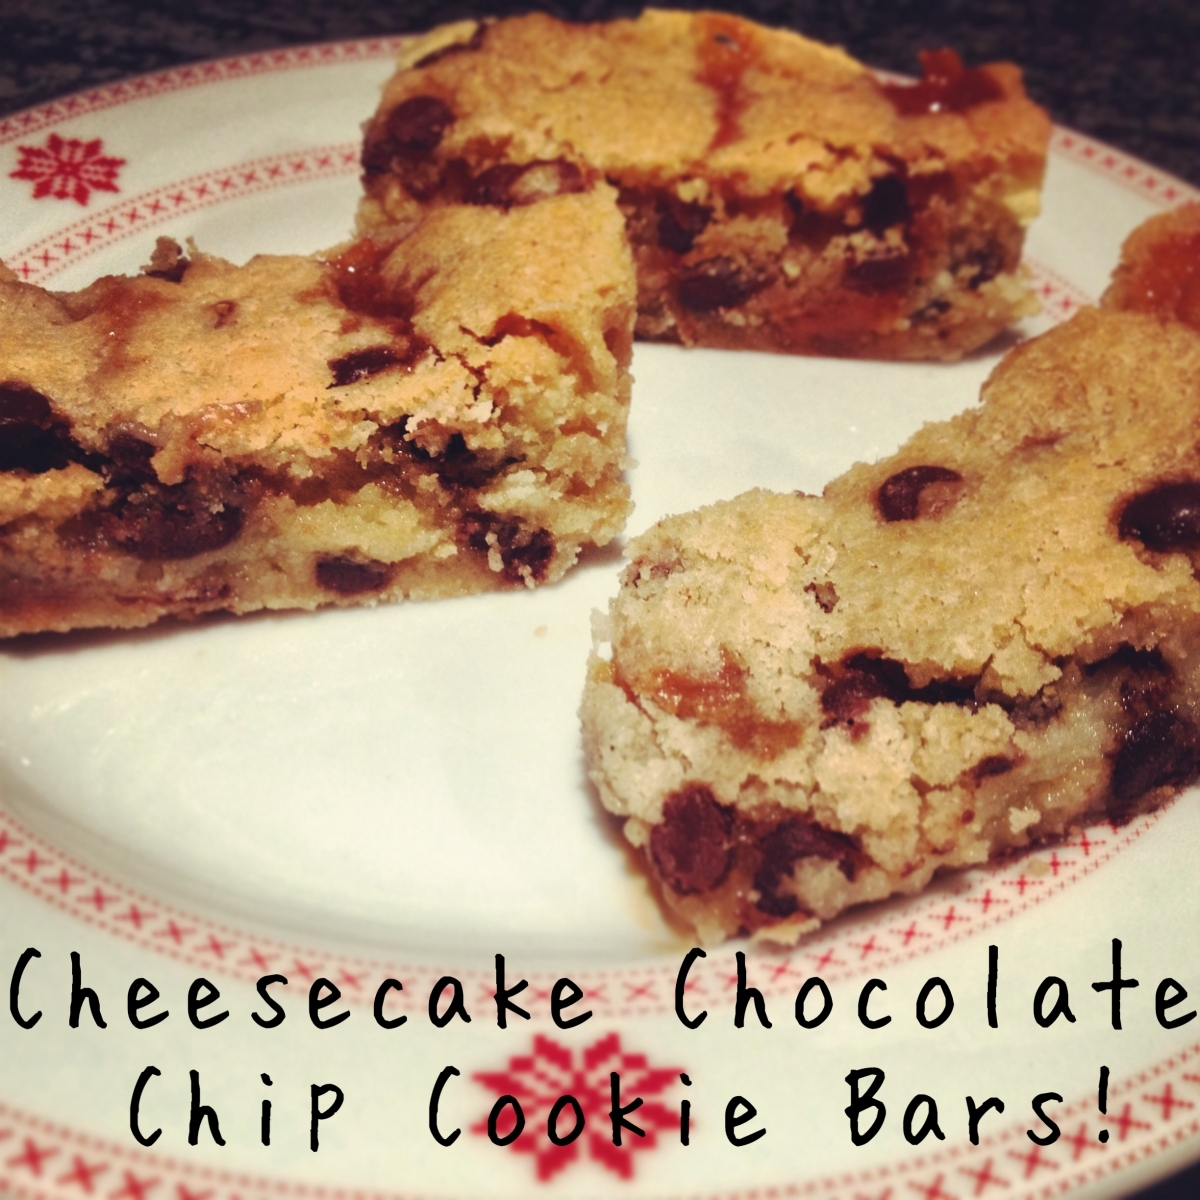 Cheesecake Chocolate Chip Cookie Bars!